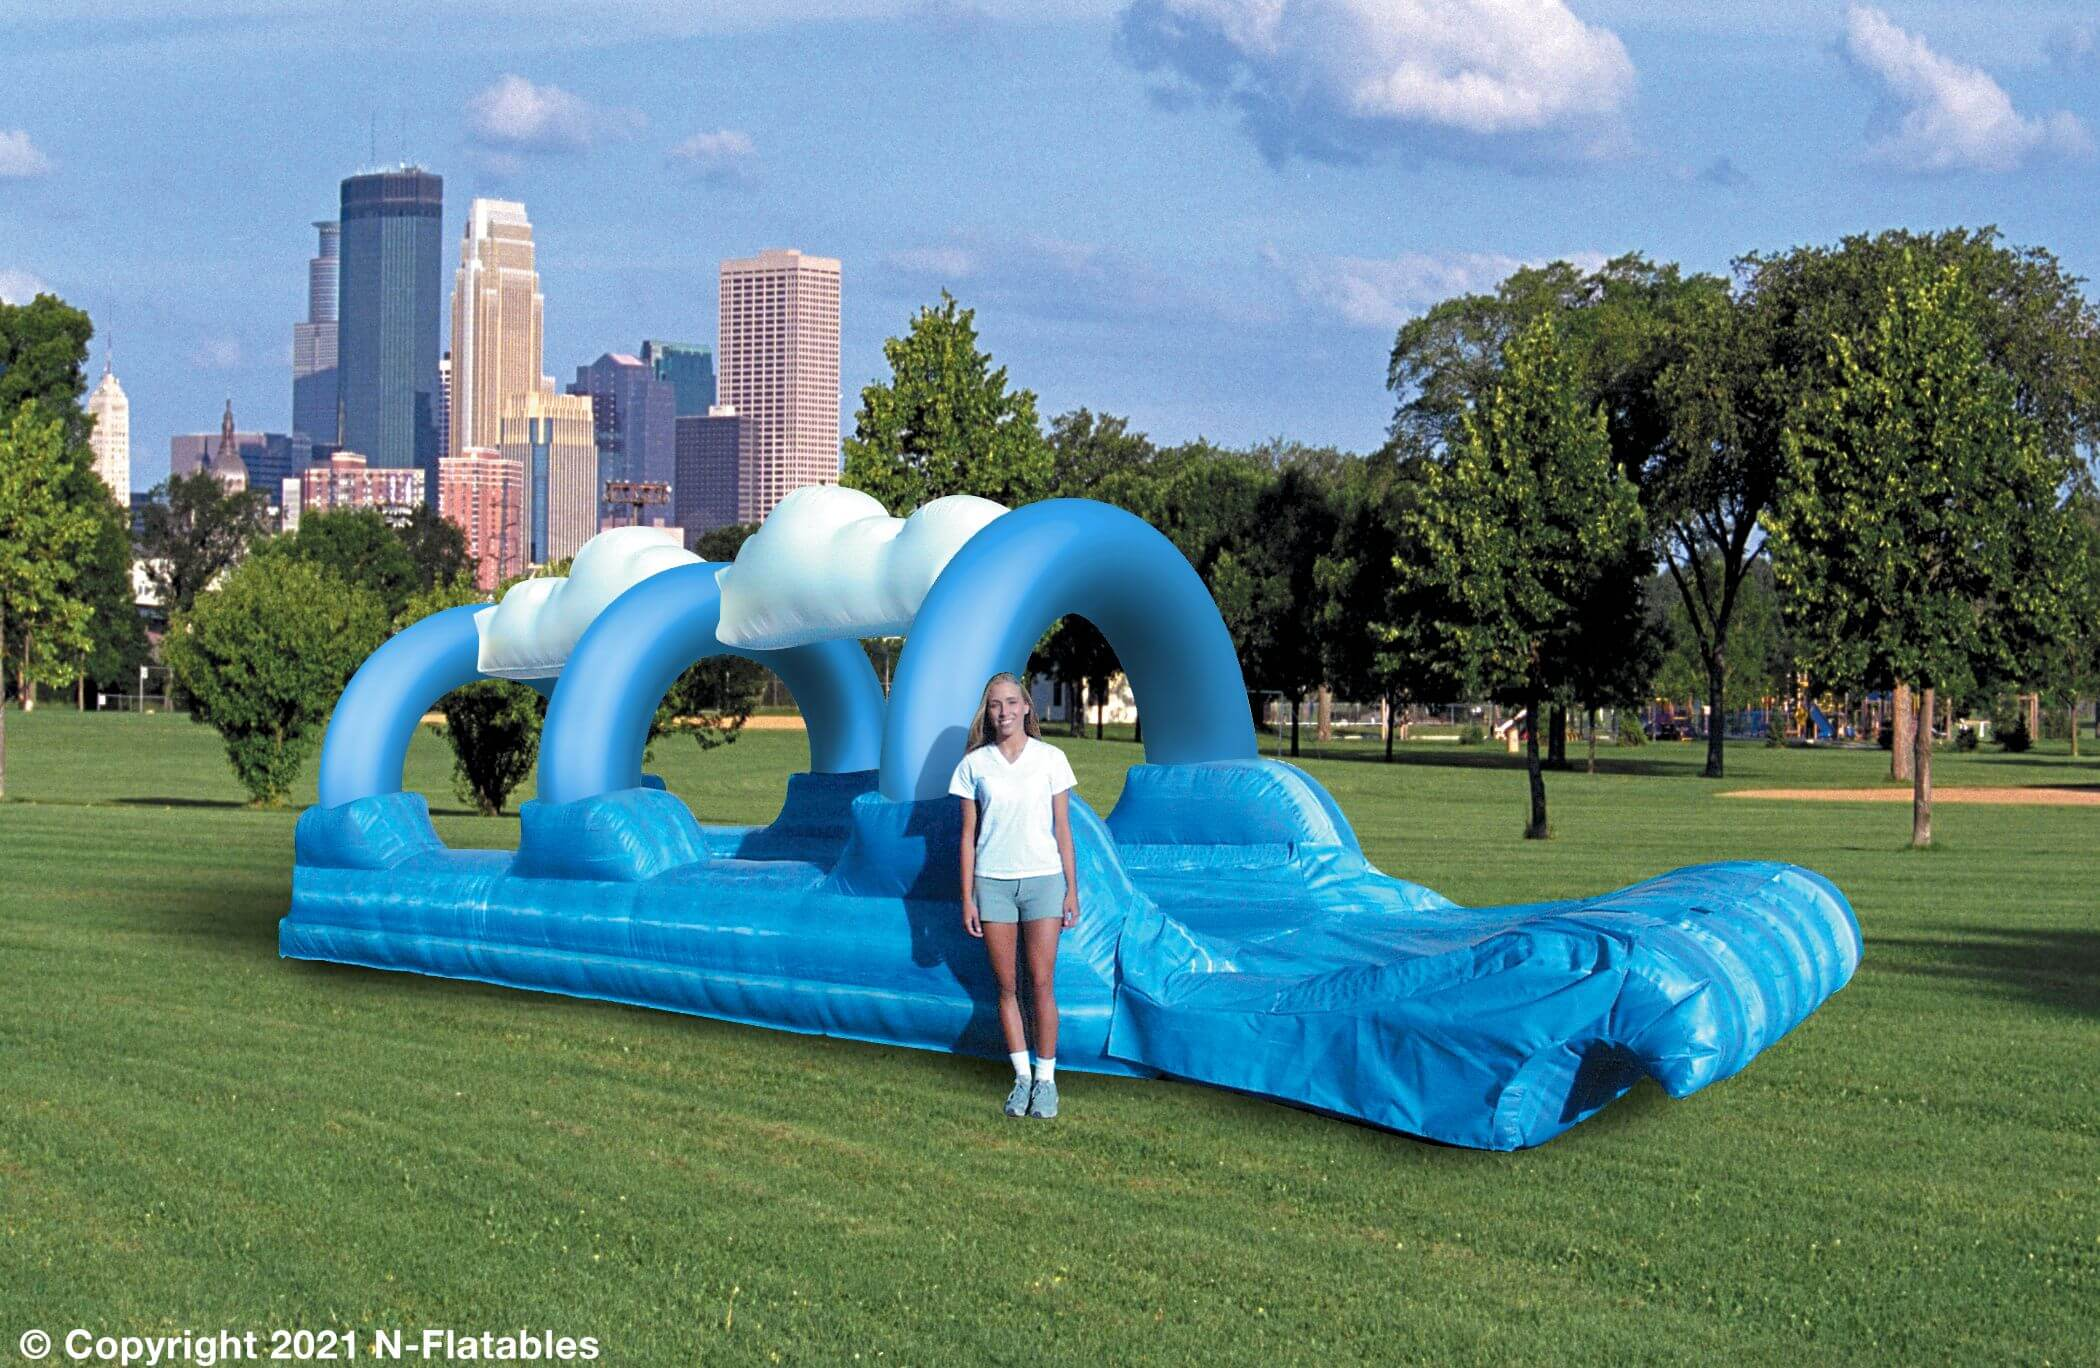 Surf and Slip single lane blue arch water ride